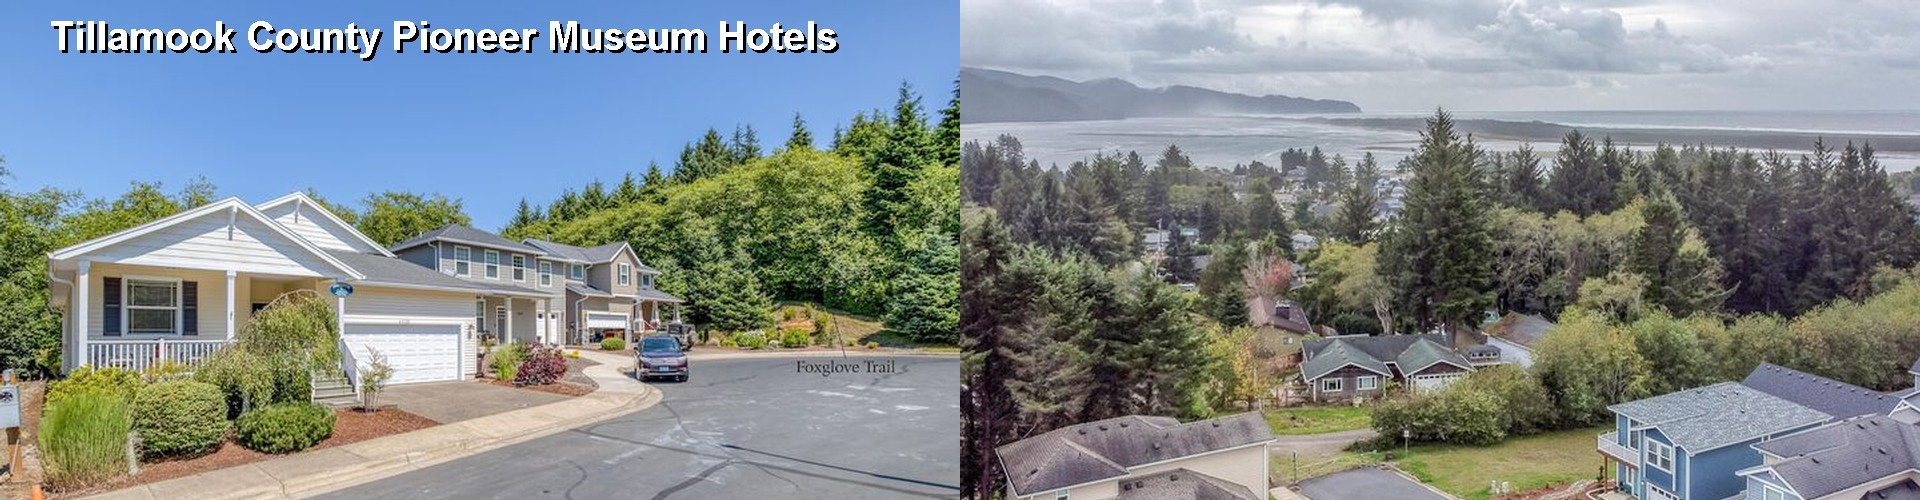 2 Best Hotels near Tillamook County Pioneer Museum